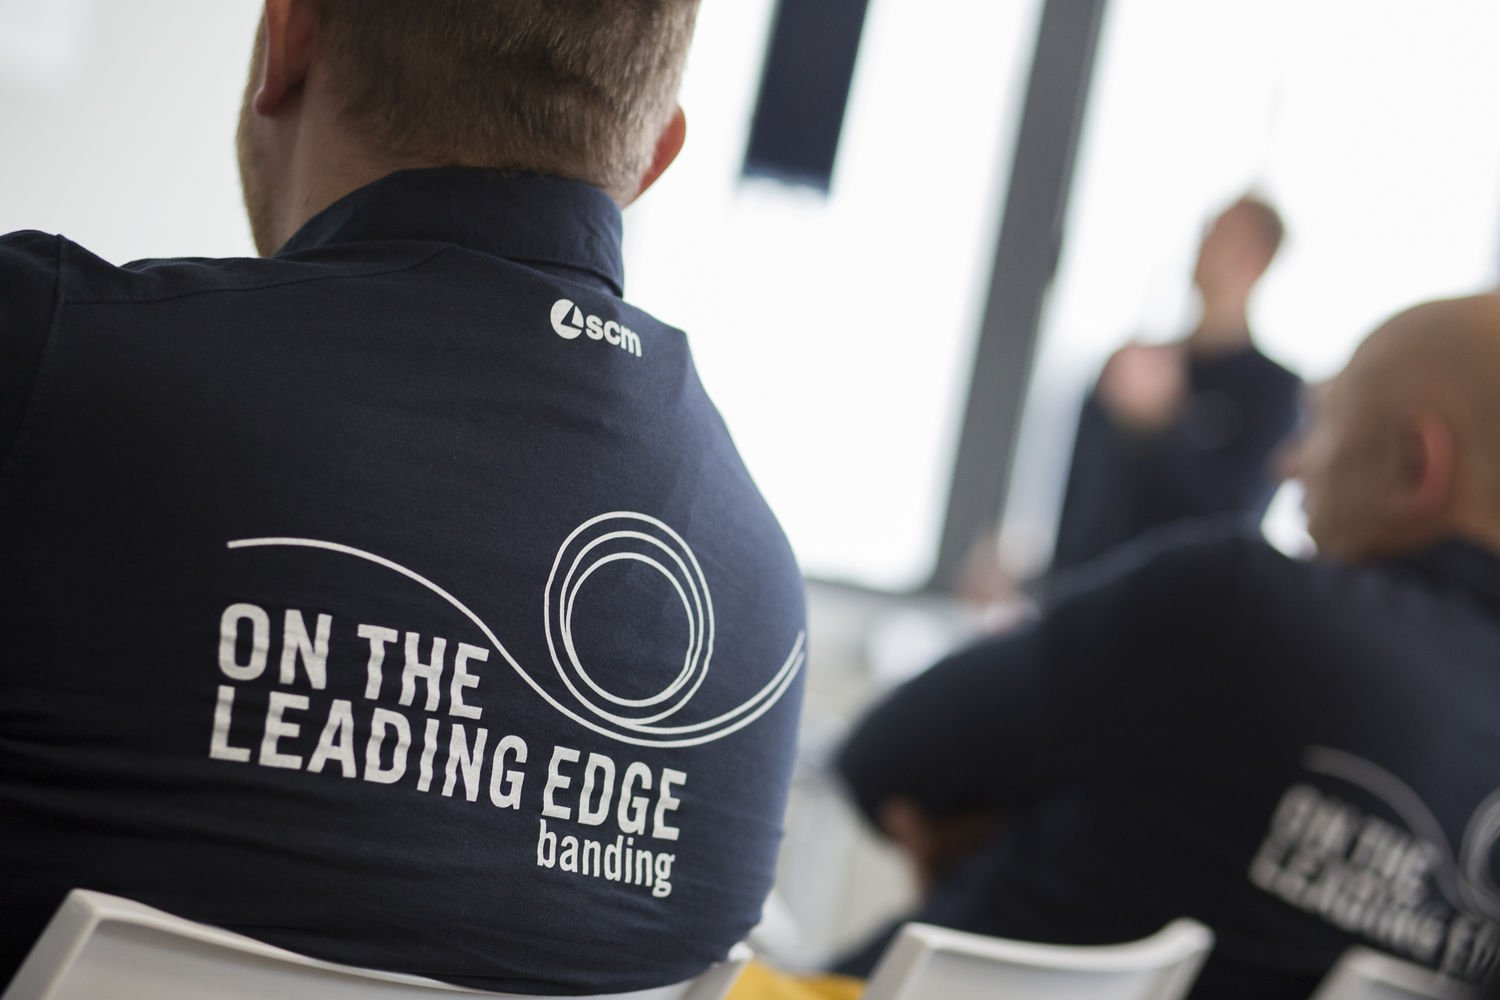 """On the Leading Edgebanding"": a preview of excellence for ""batch 1"" edgebanding with a Sales Training Day."